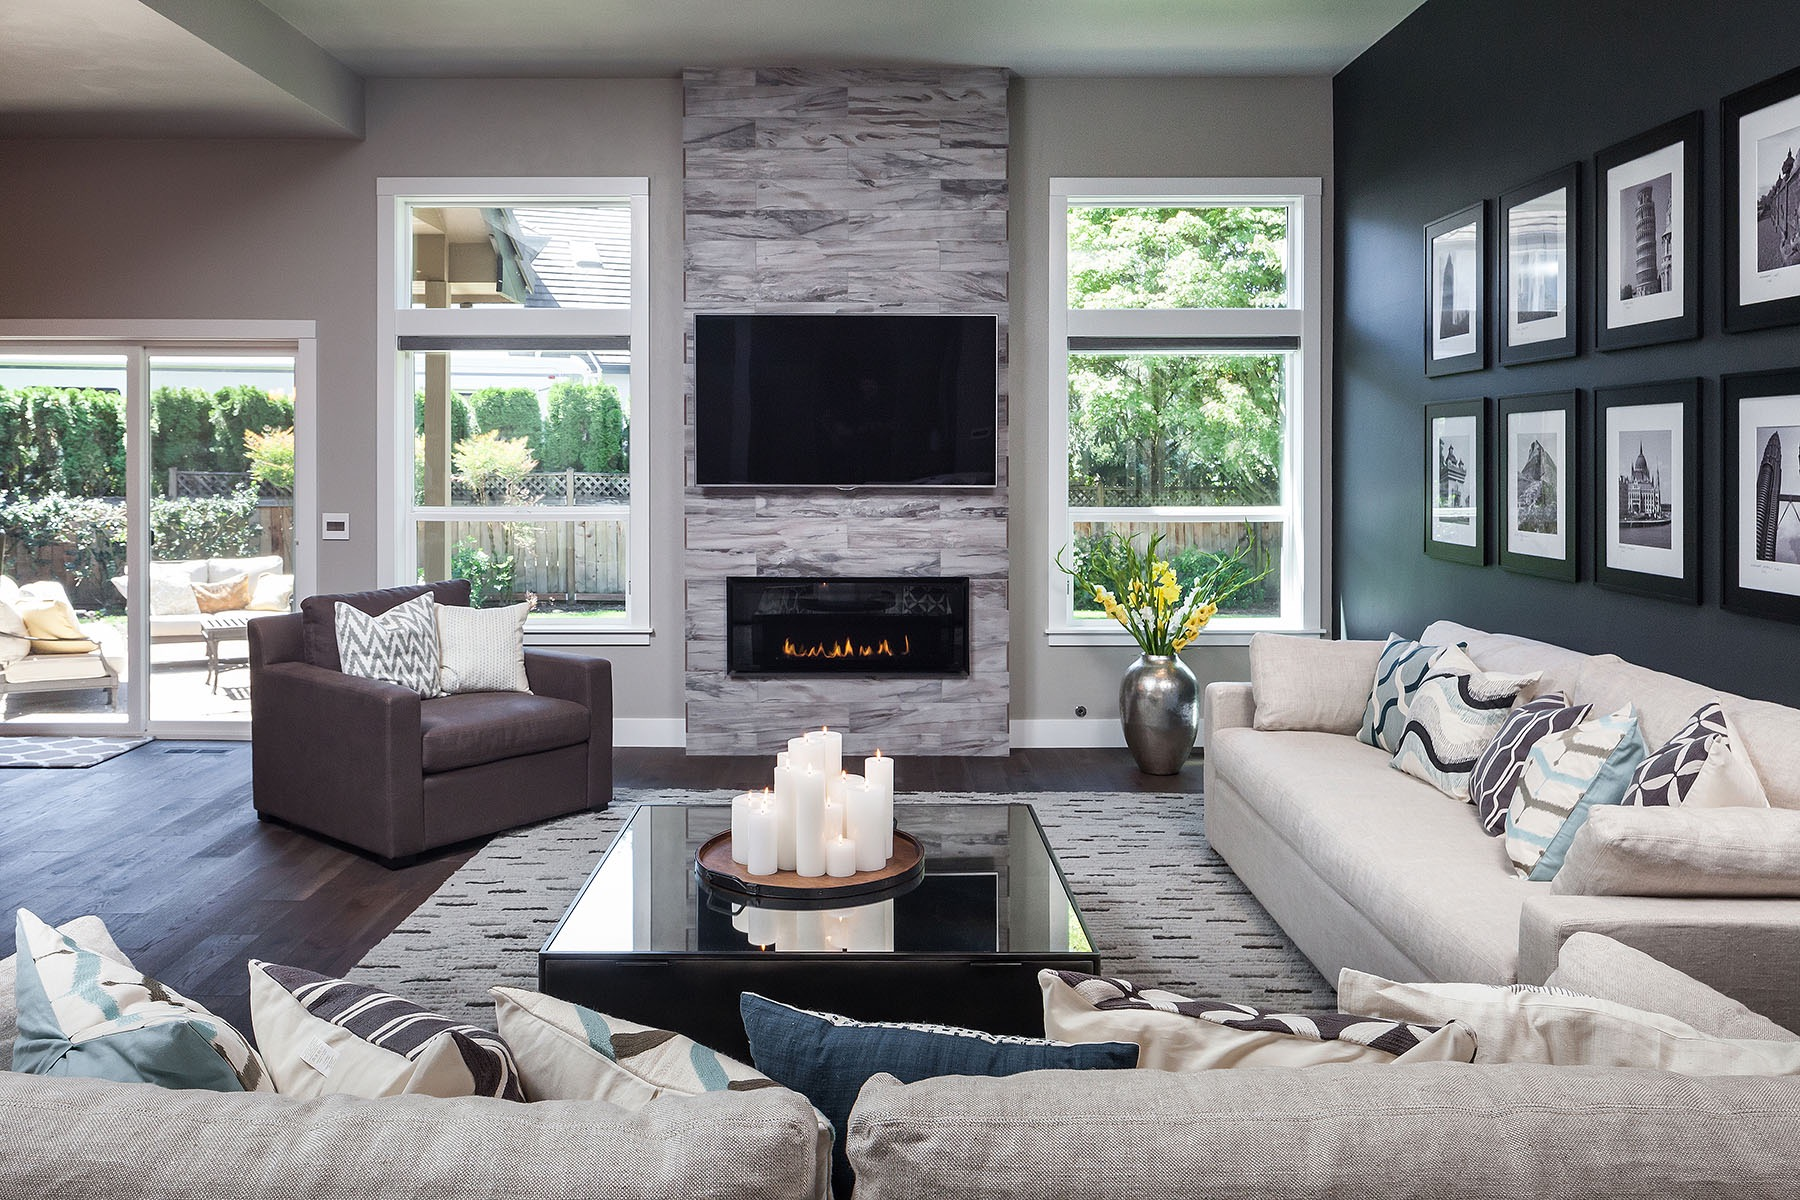 Stone Fireplace For Contemporary Living Room (Image 29 of 31)